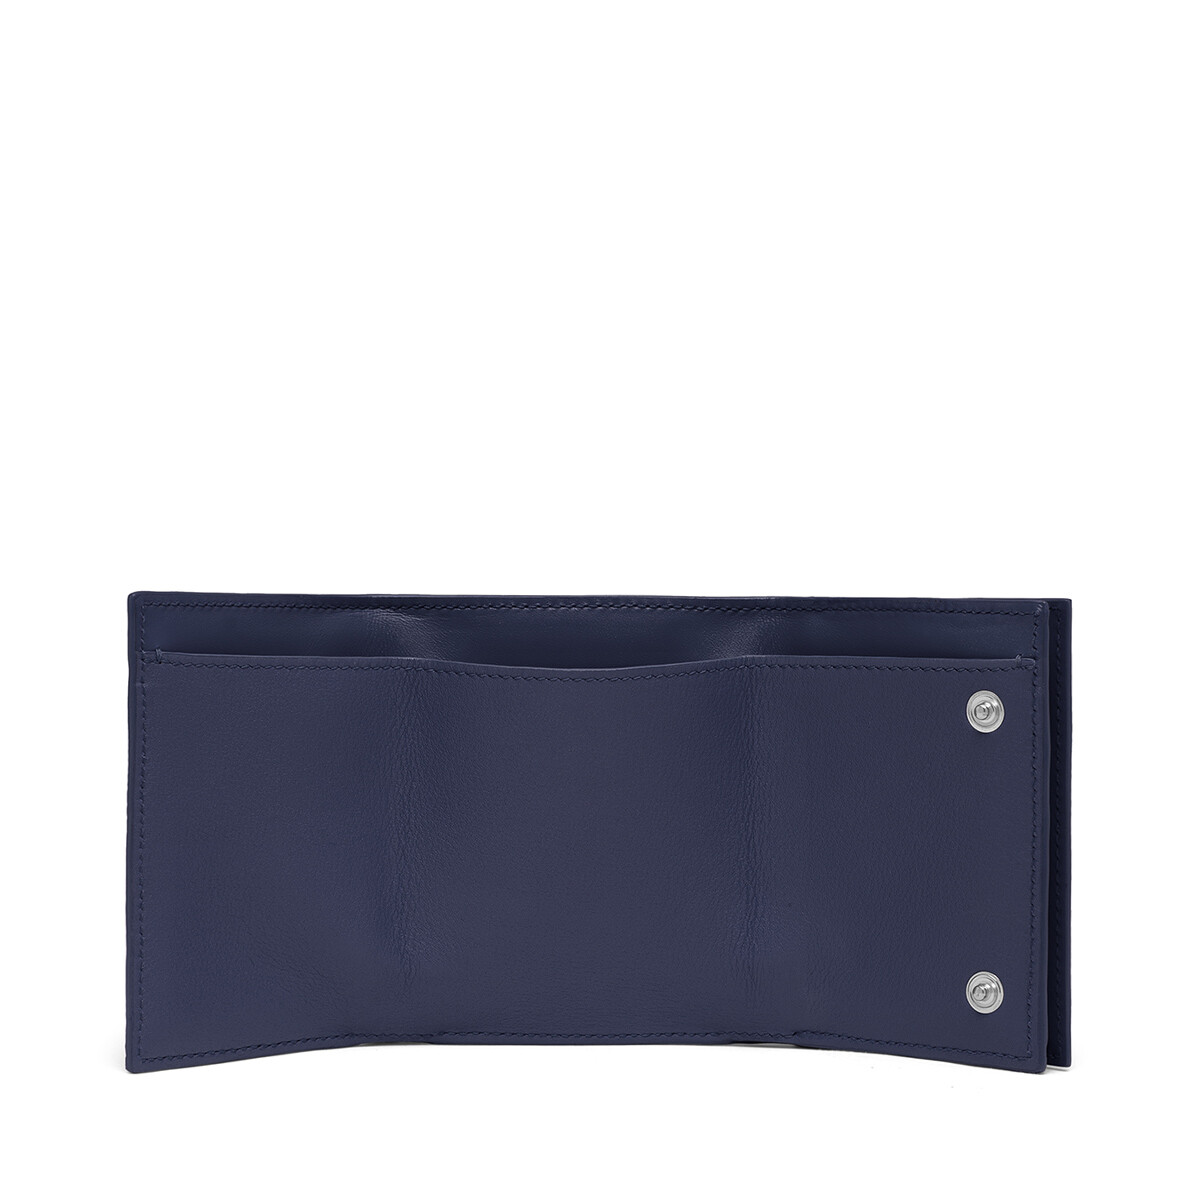 LOEWE Linen Trifold Wallet 海軍藍 front